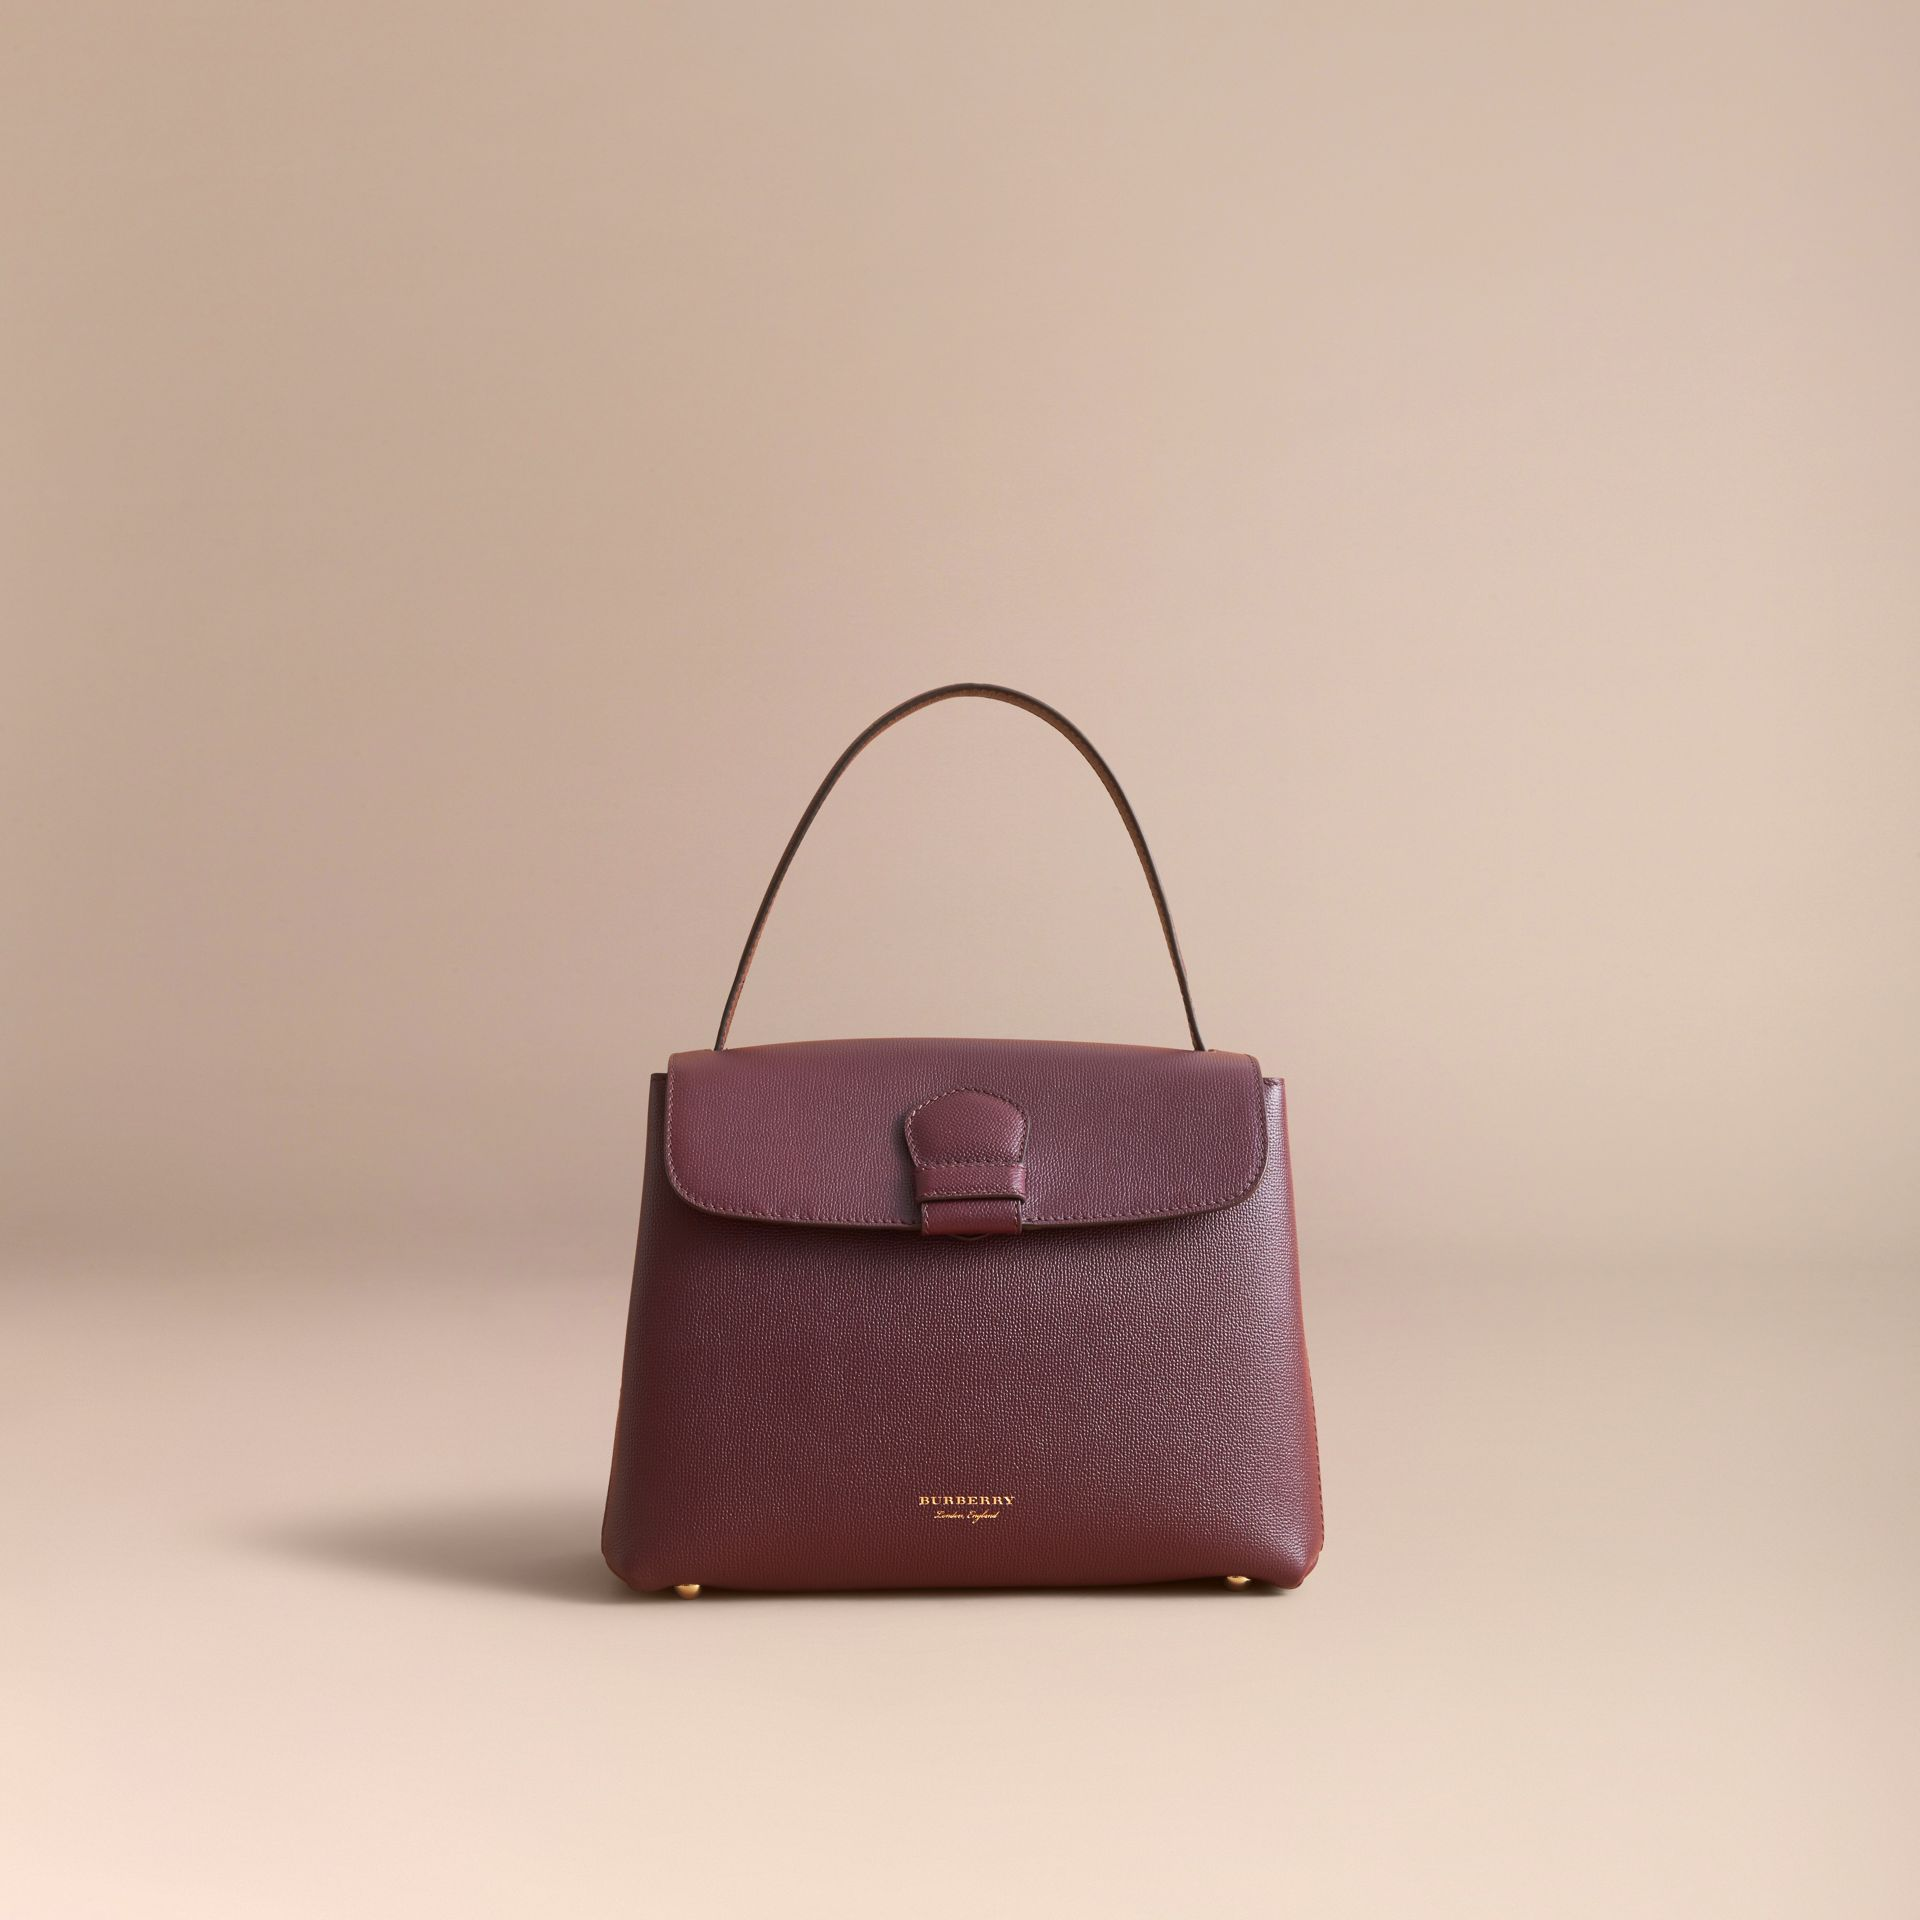 Medium Grainy Leather and House Check Tote Bag in Mahogany Red - Women | Burberry Singapore - gallery image 7